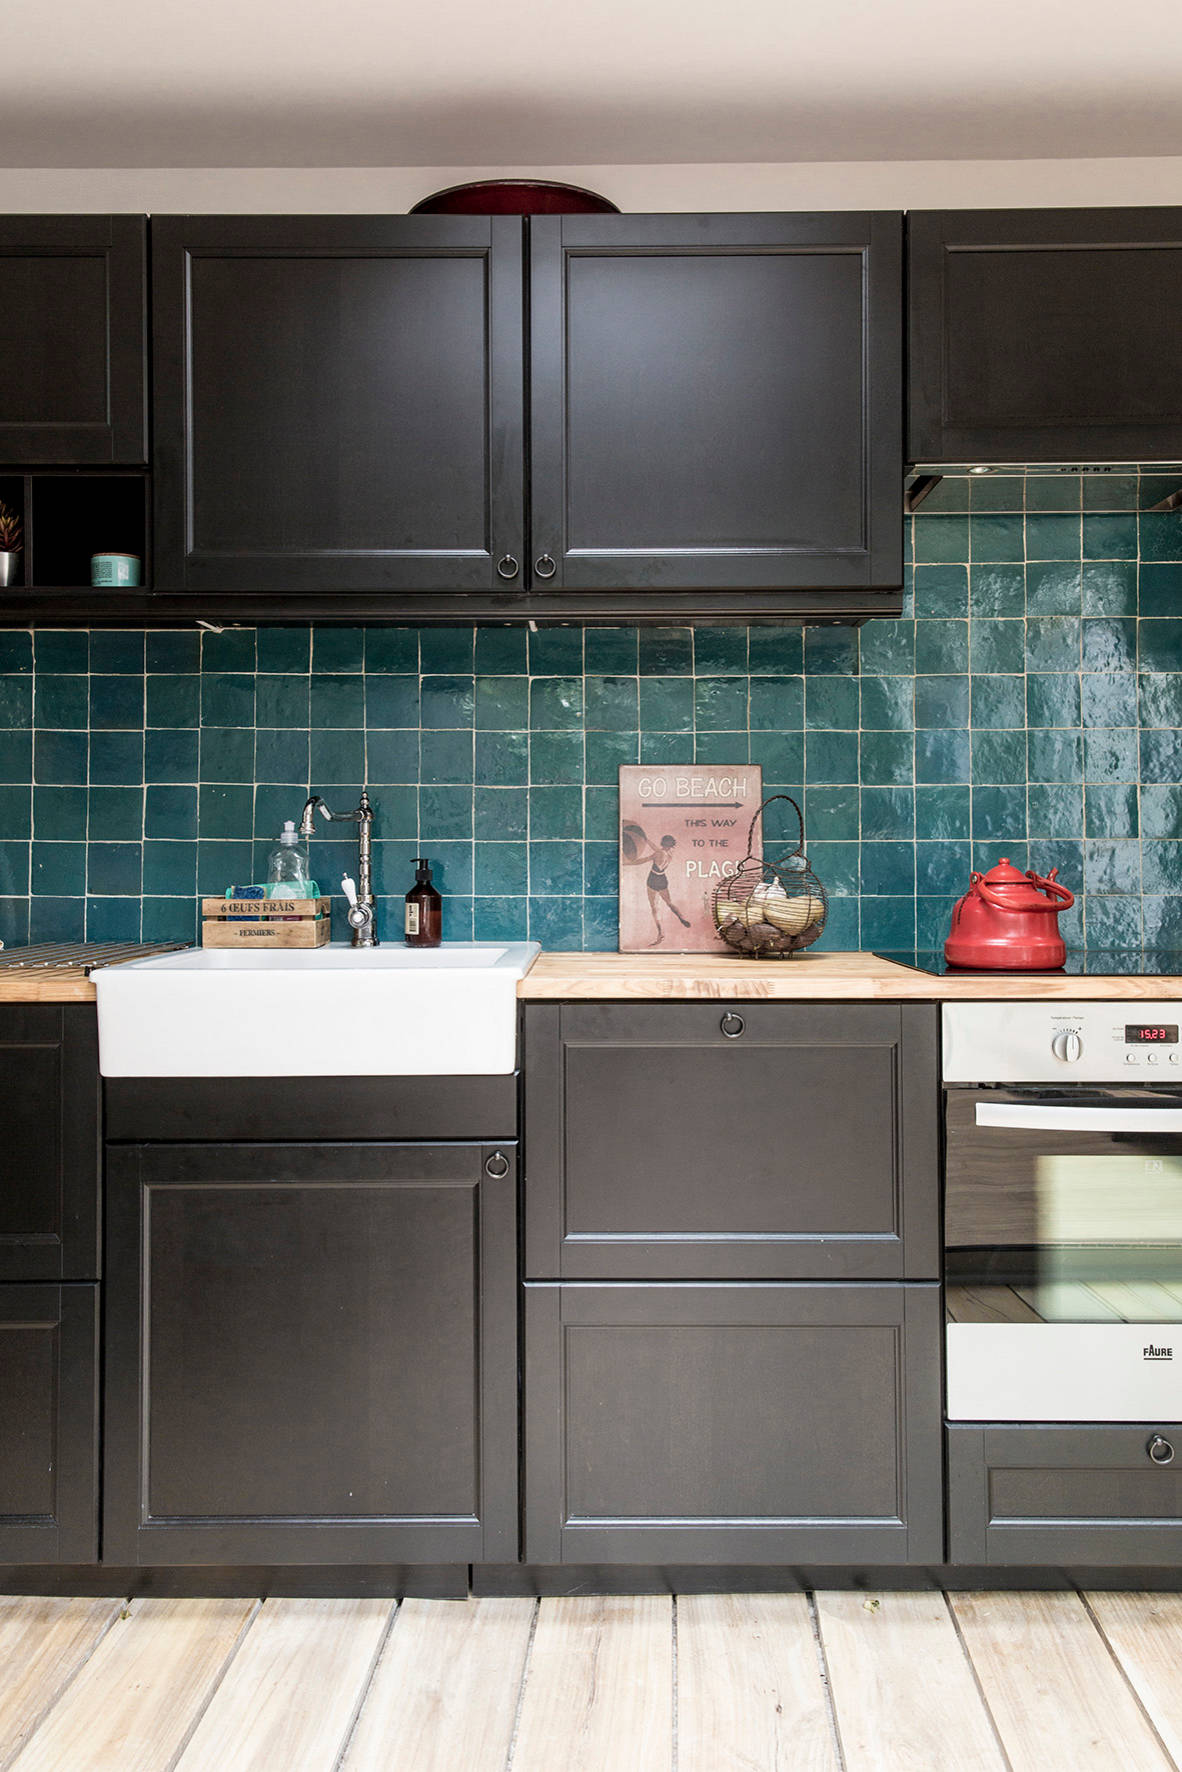 75 Beautiful Kitchen With Black Cabinets And Blue Backsplash Pictures Ideas May 2021 Houzz